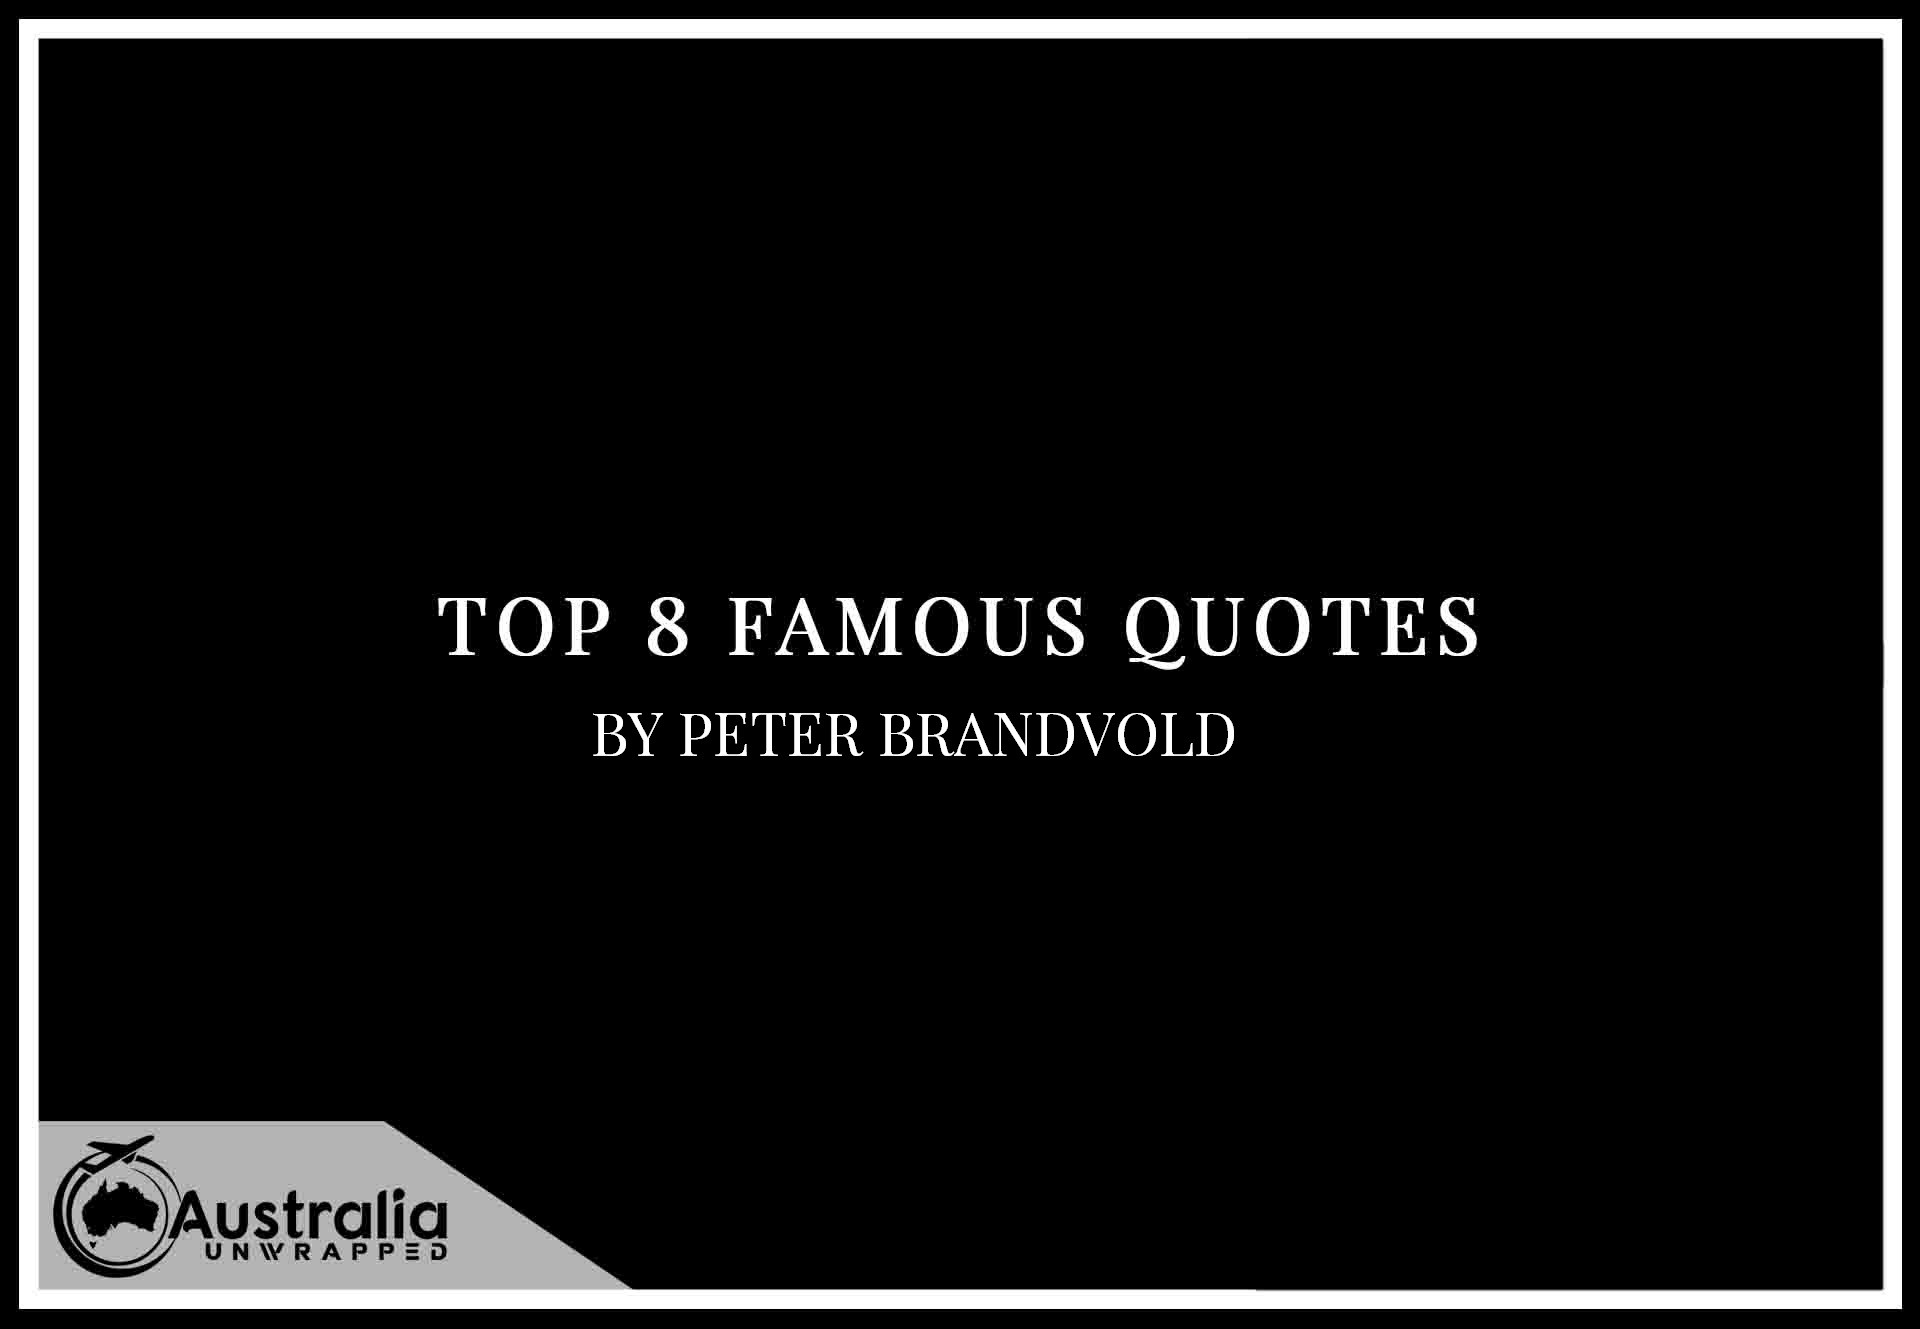 Top 8 Famous Quotes by Author Peter Brandvold